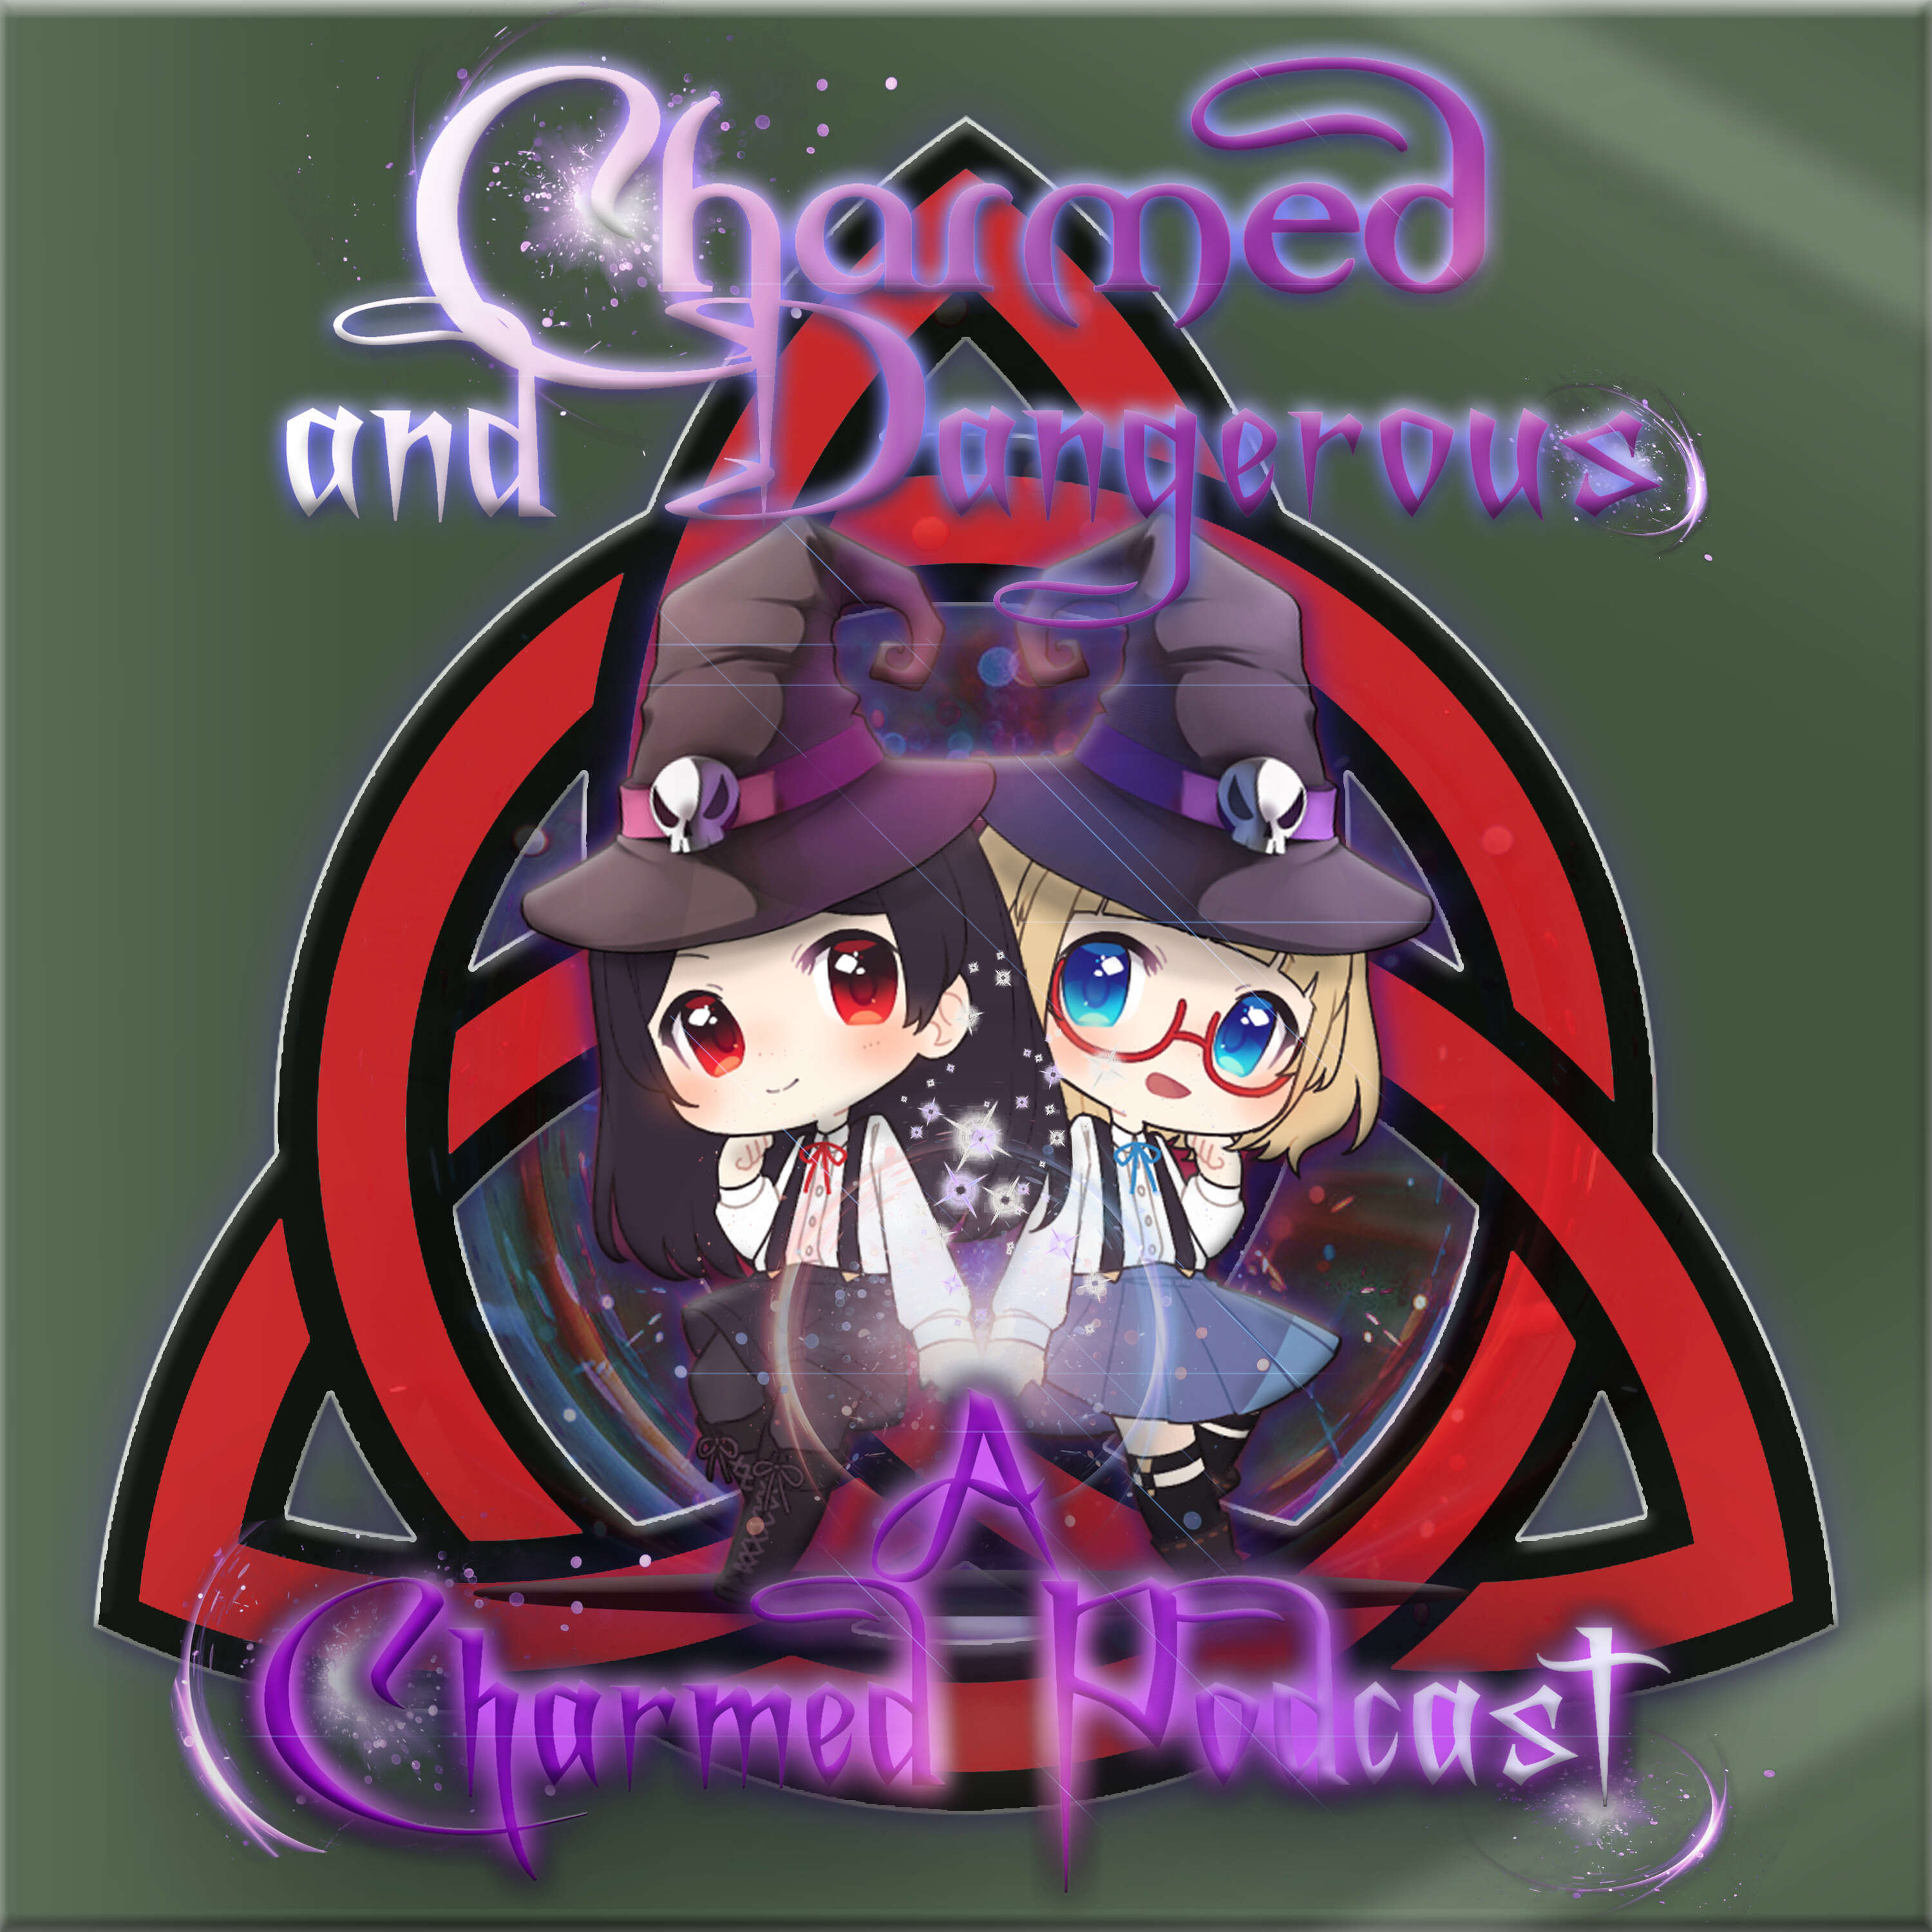 Charmed And Dangerous: A Charmed Podcast | Listen via Stitcher for ...